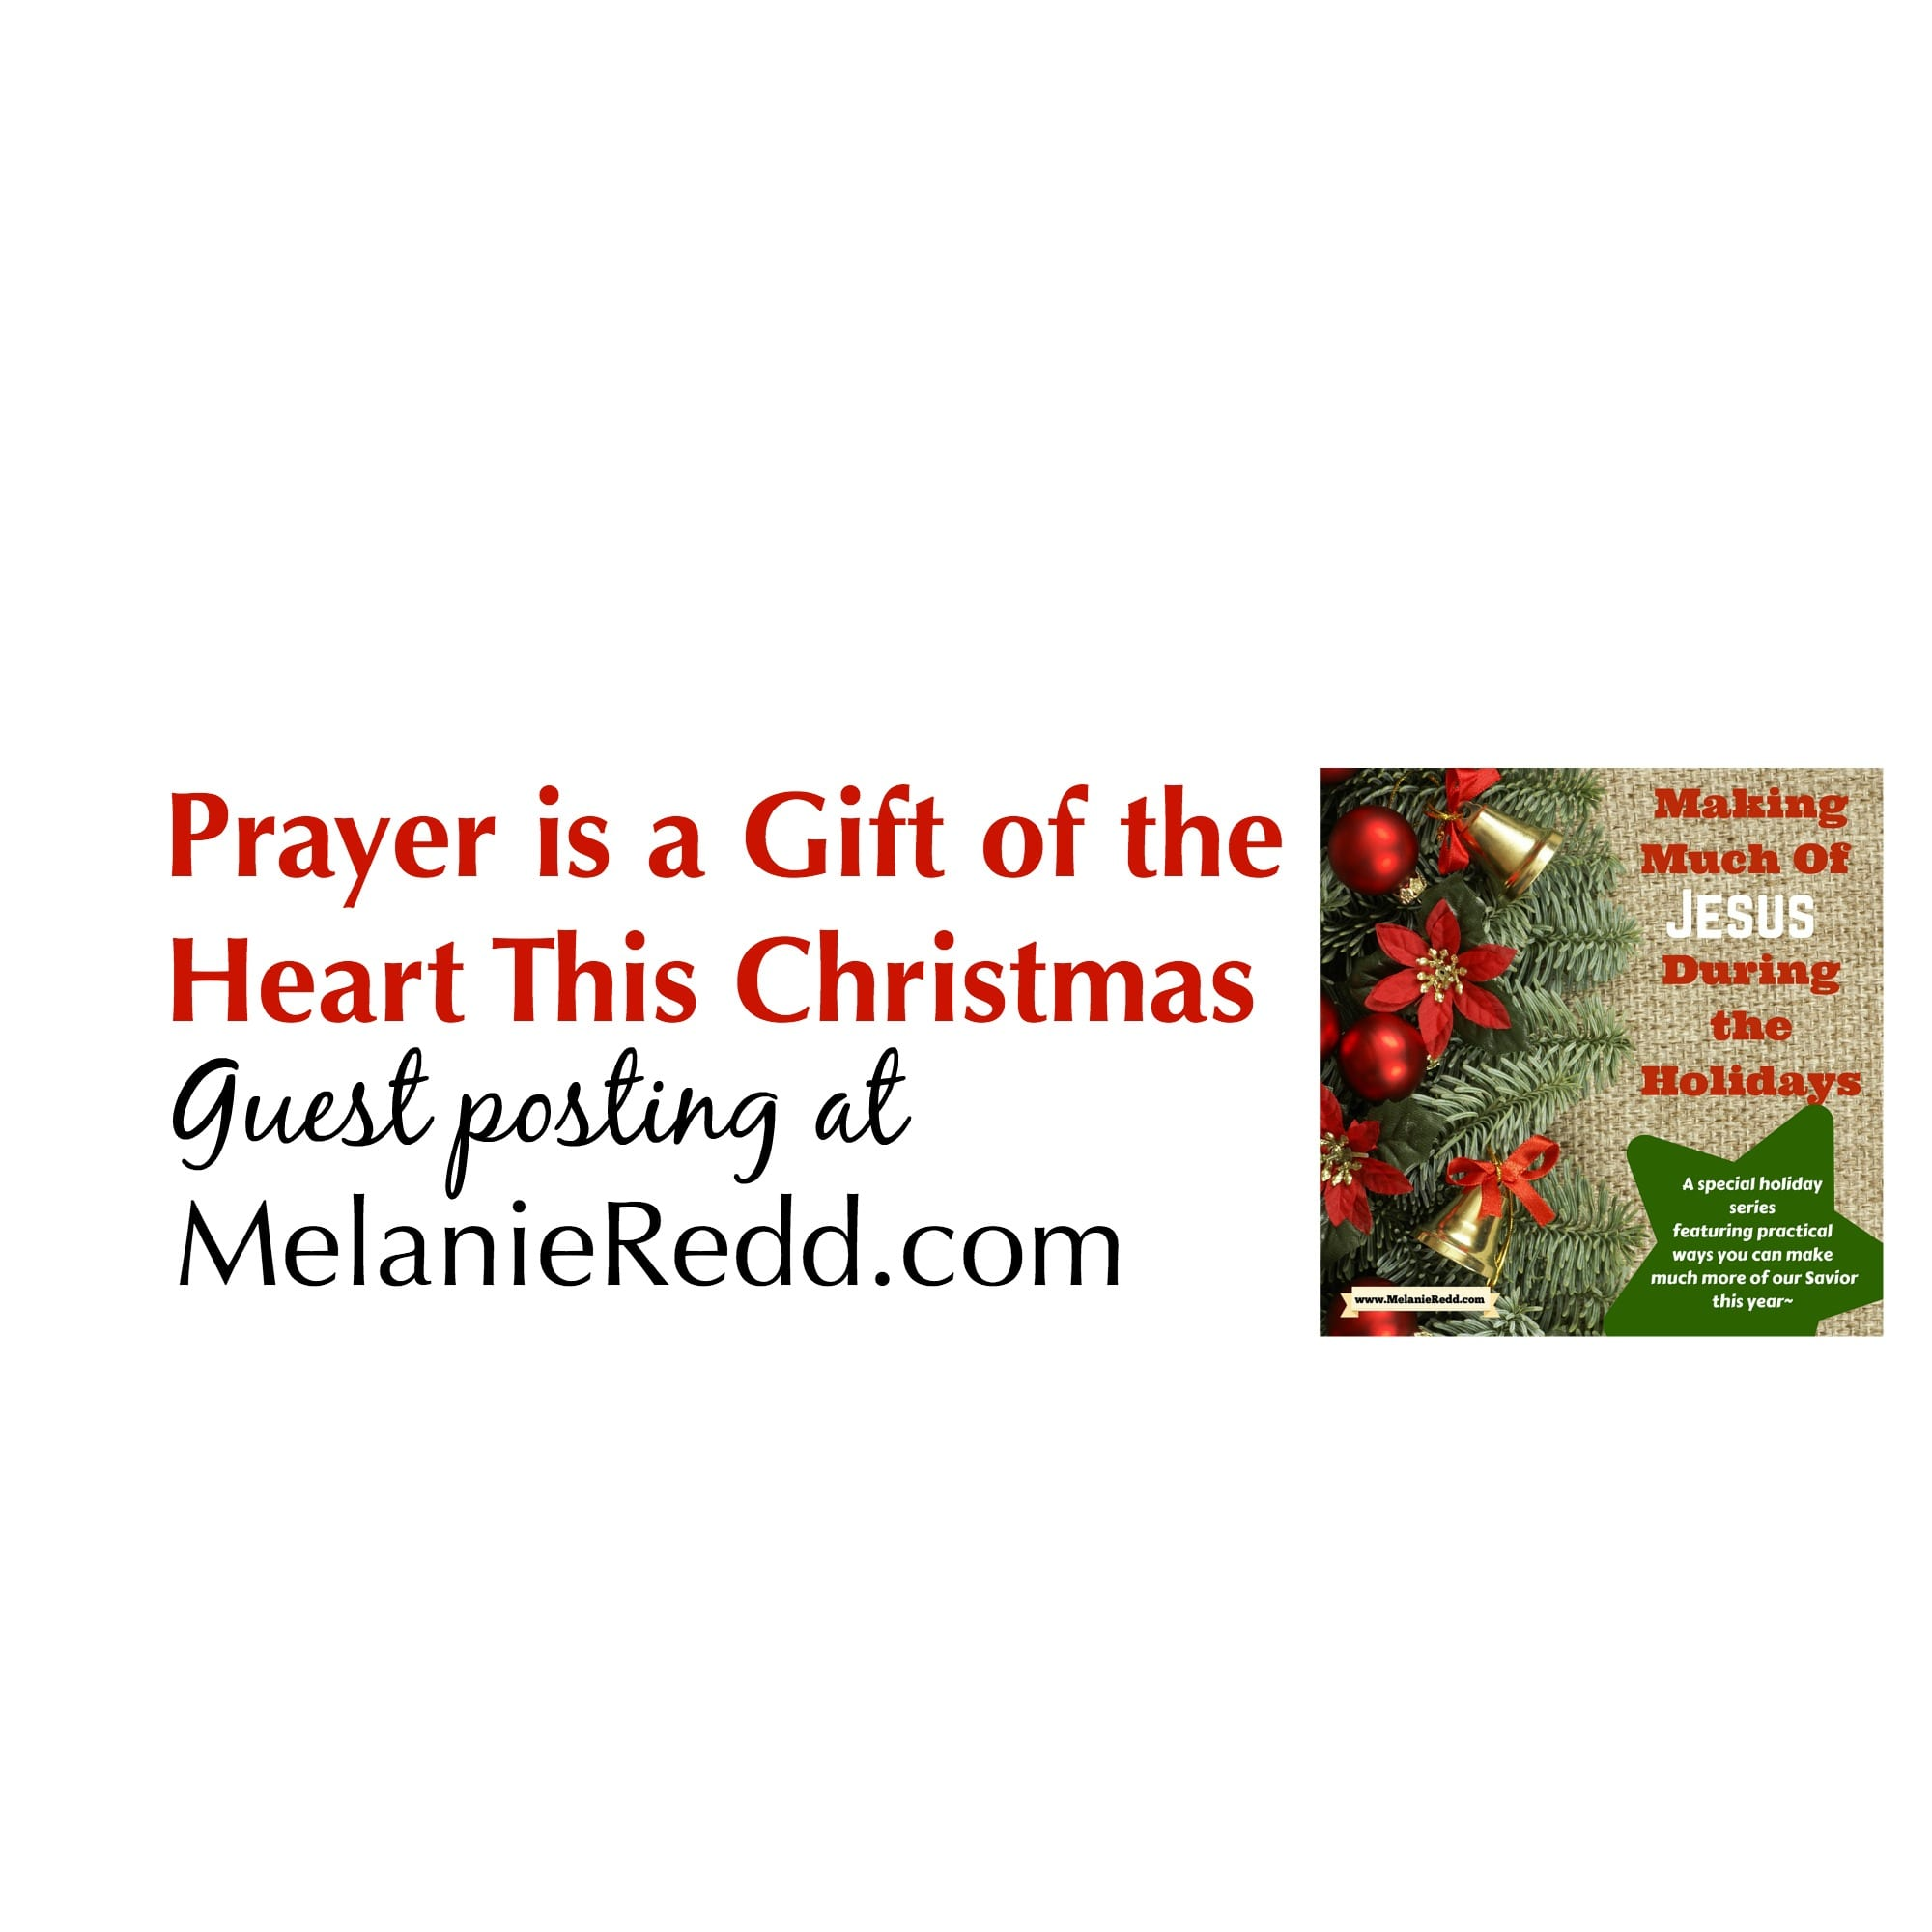 Prayer is a Gift of the Heart This Christmas